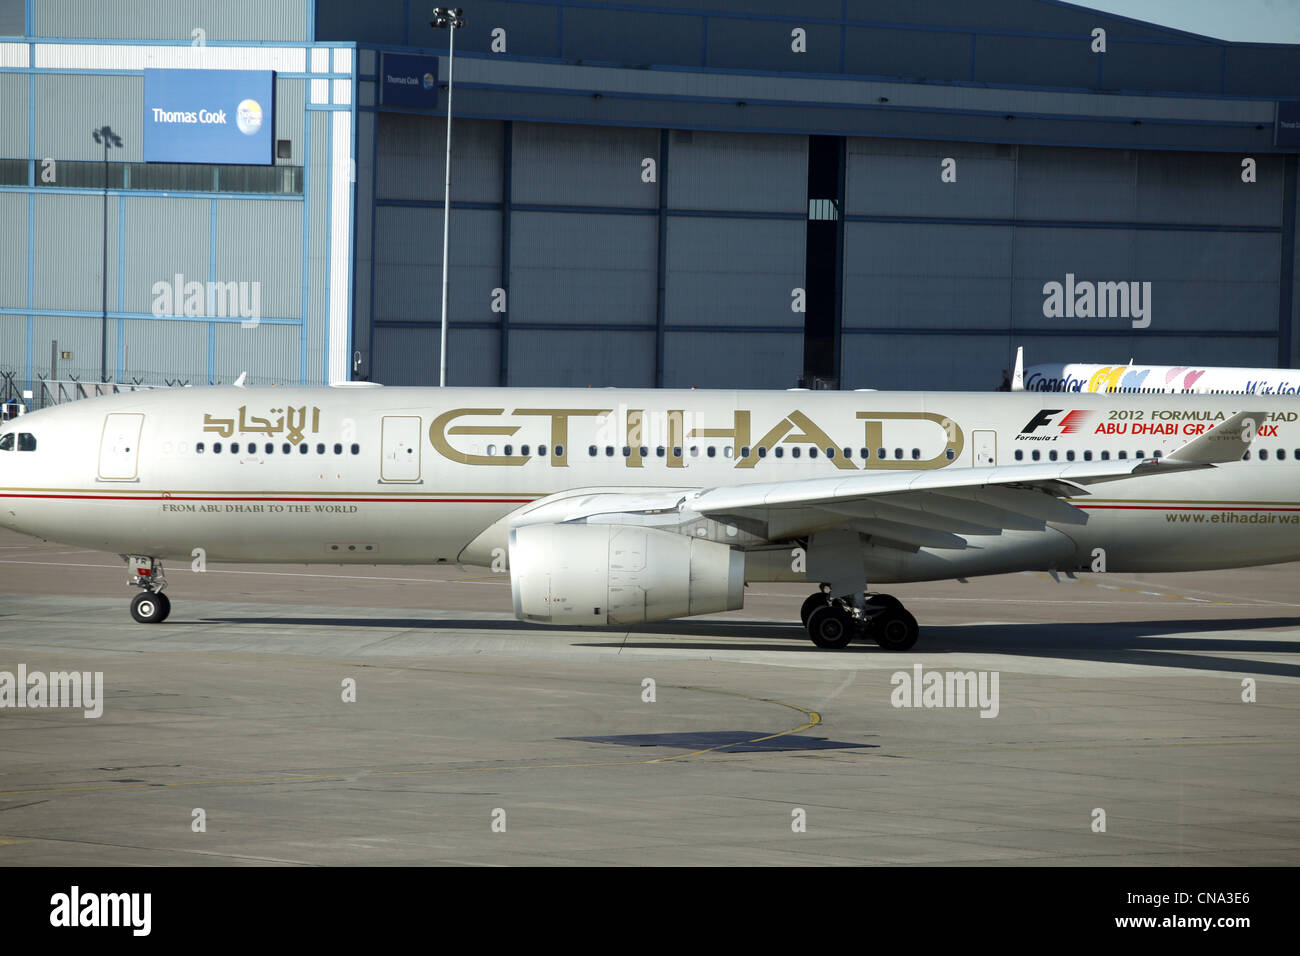 ETIHAD AIRCRAFT MANCHESTER AIRPORT TERMINAL 1 26 March 2012 - Stock Image